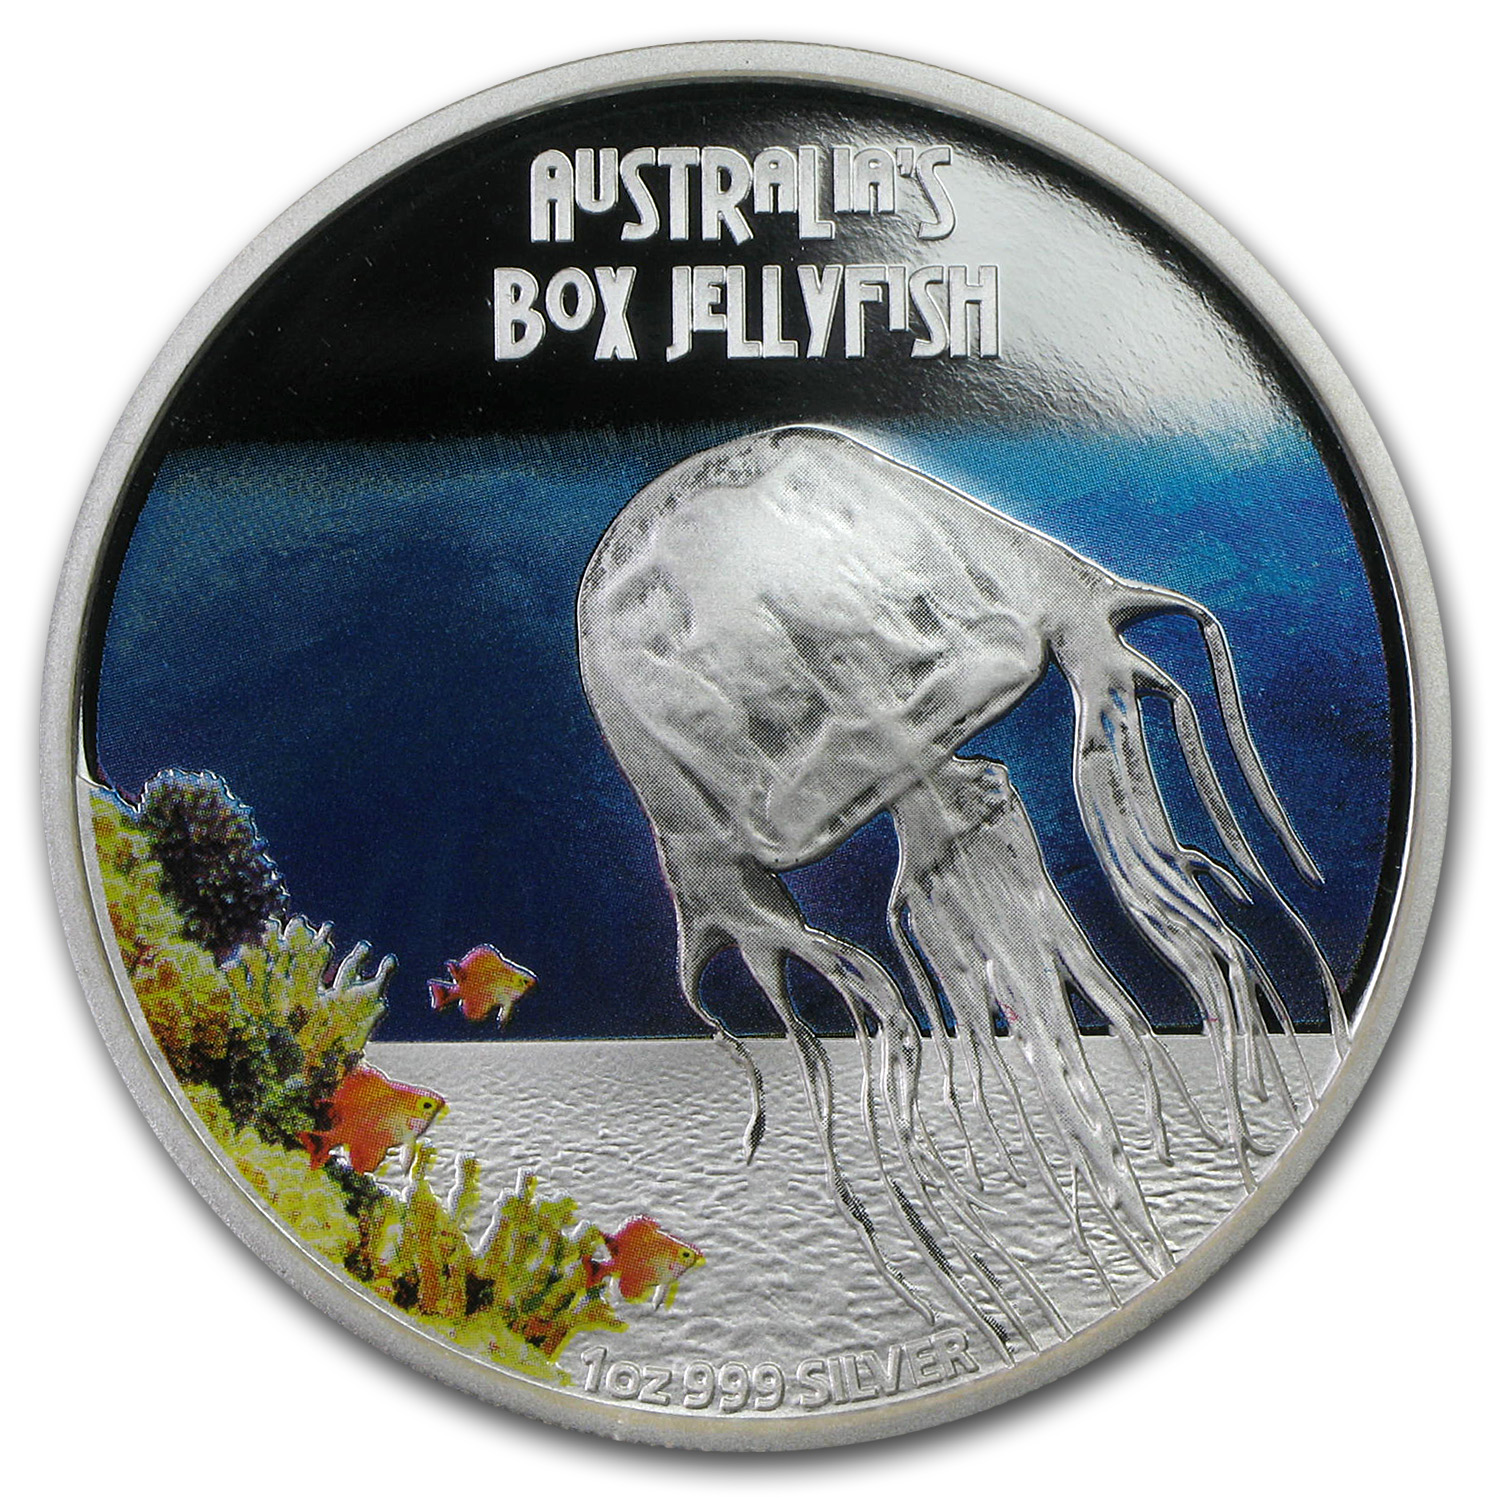 2011 Australia 1 oz Silver Box Jellyfish Proof